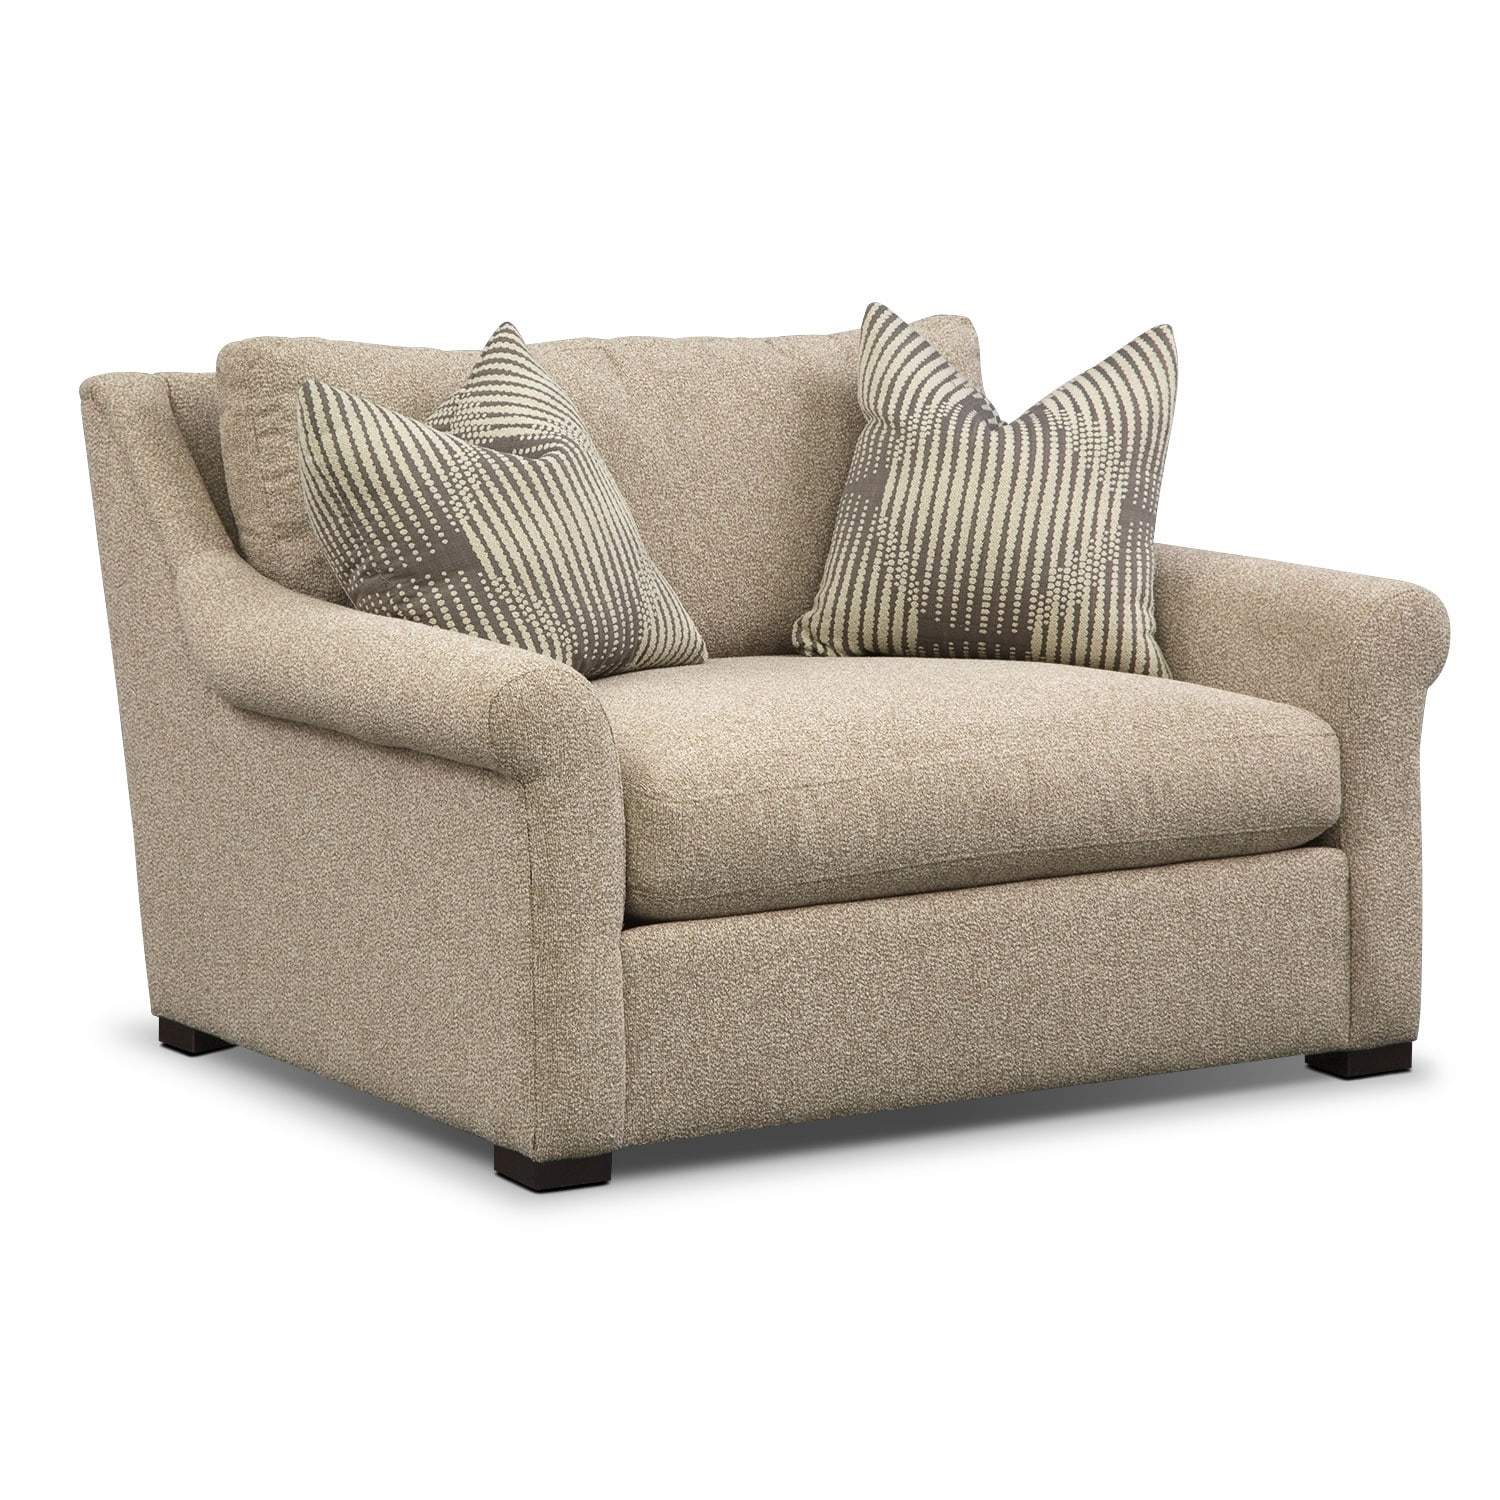 packages package room beige product and living chair loveseat set armless sofa american marisol